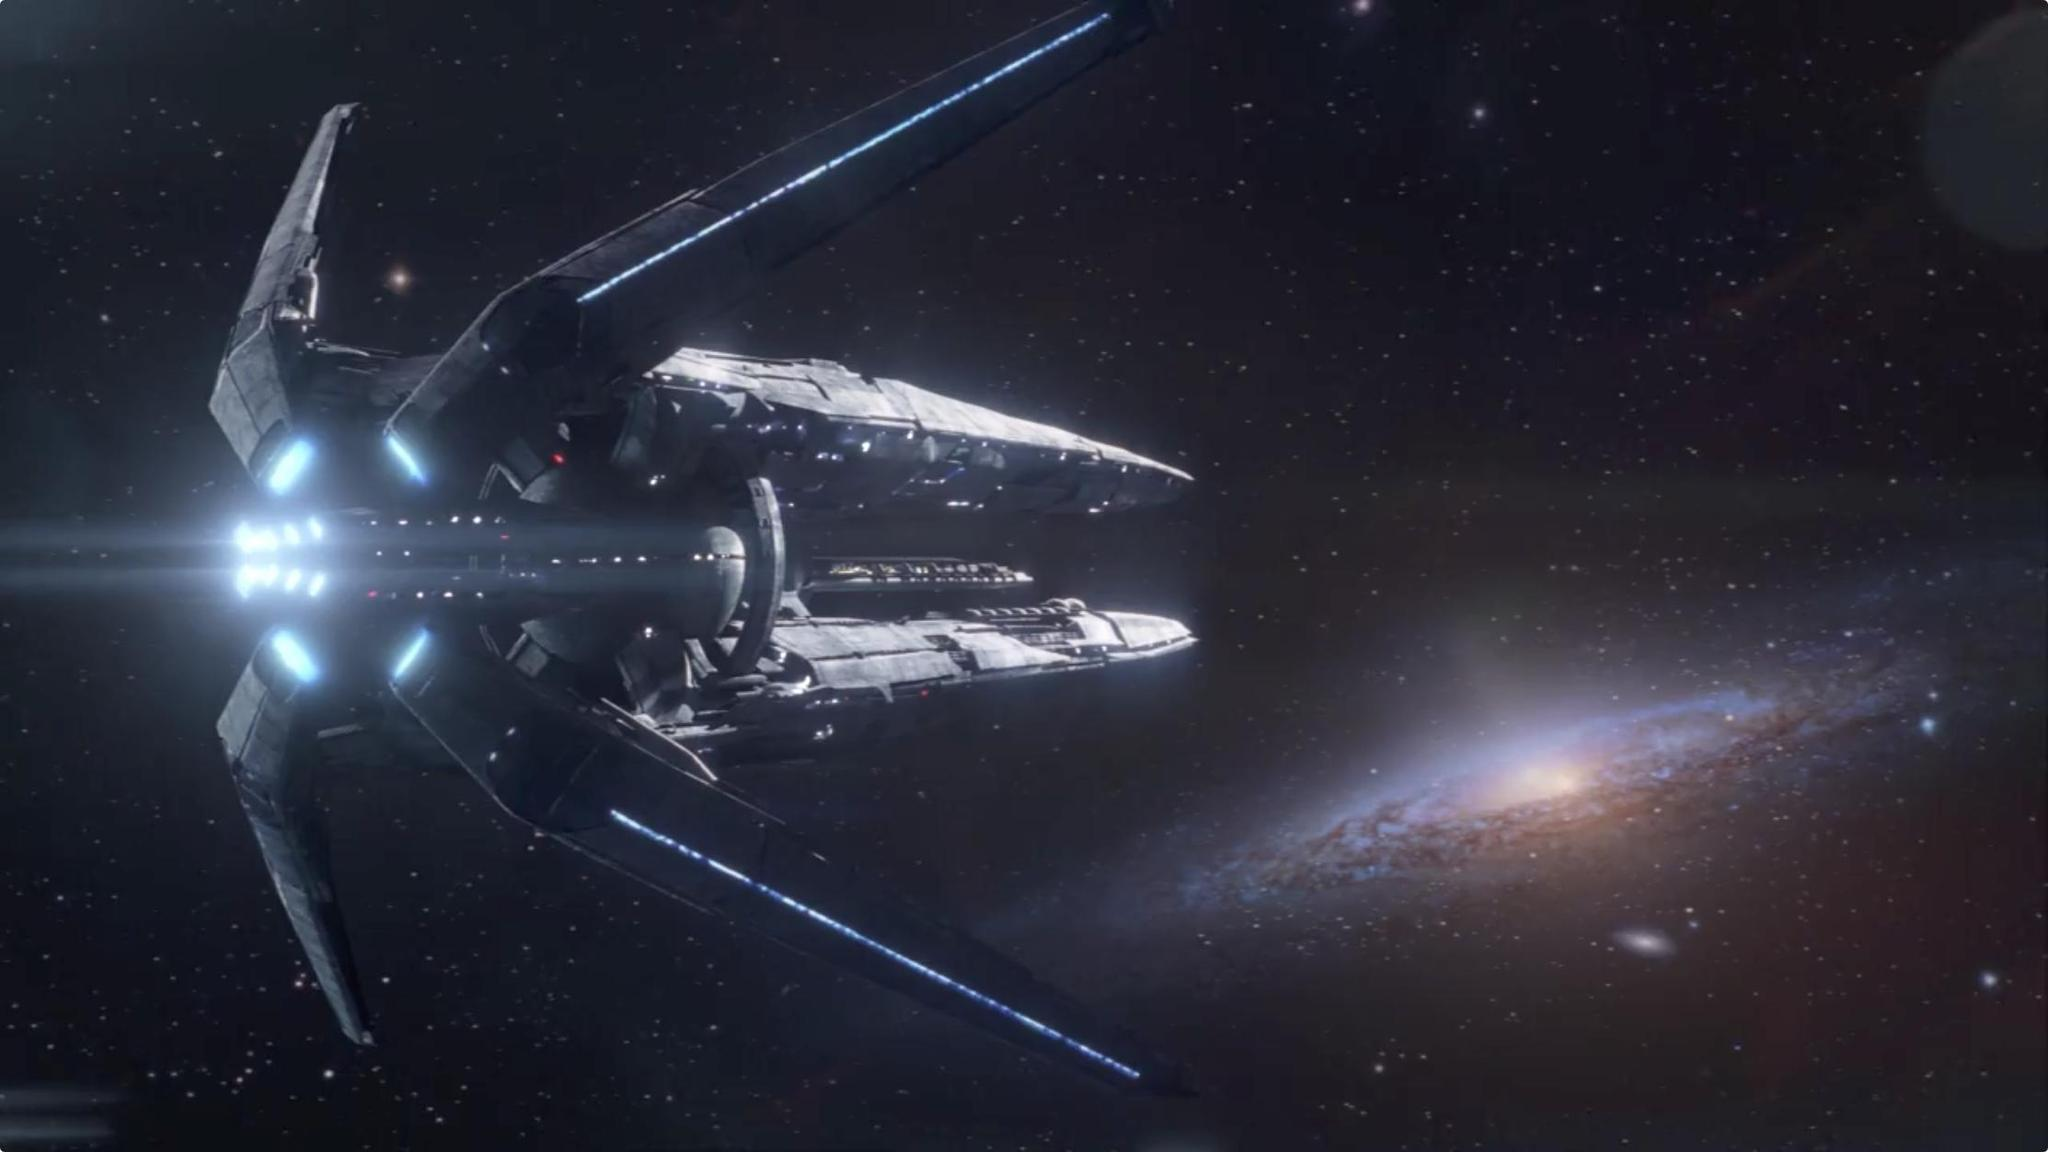 Mass Effect: Andromeda Wallpapers Images Photos Pictures Backgrounds